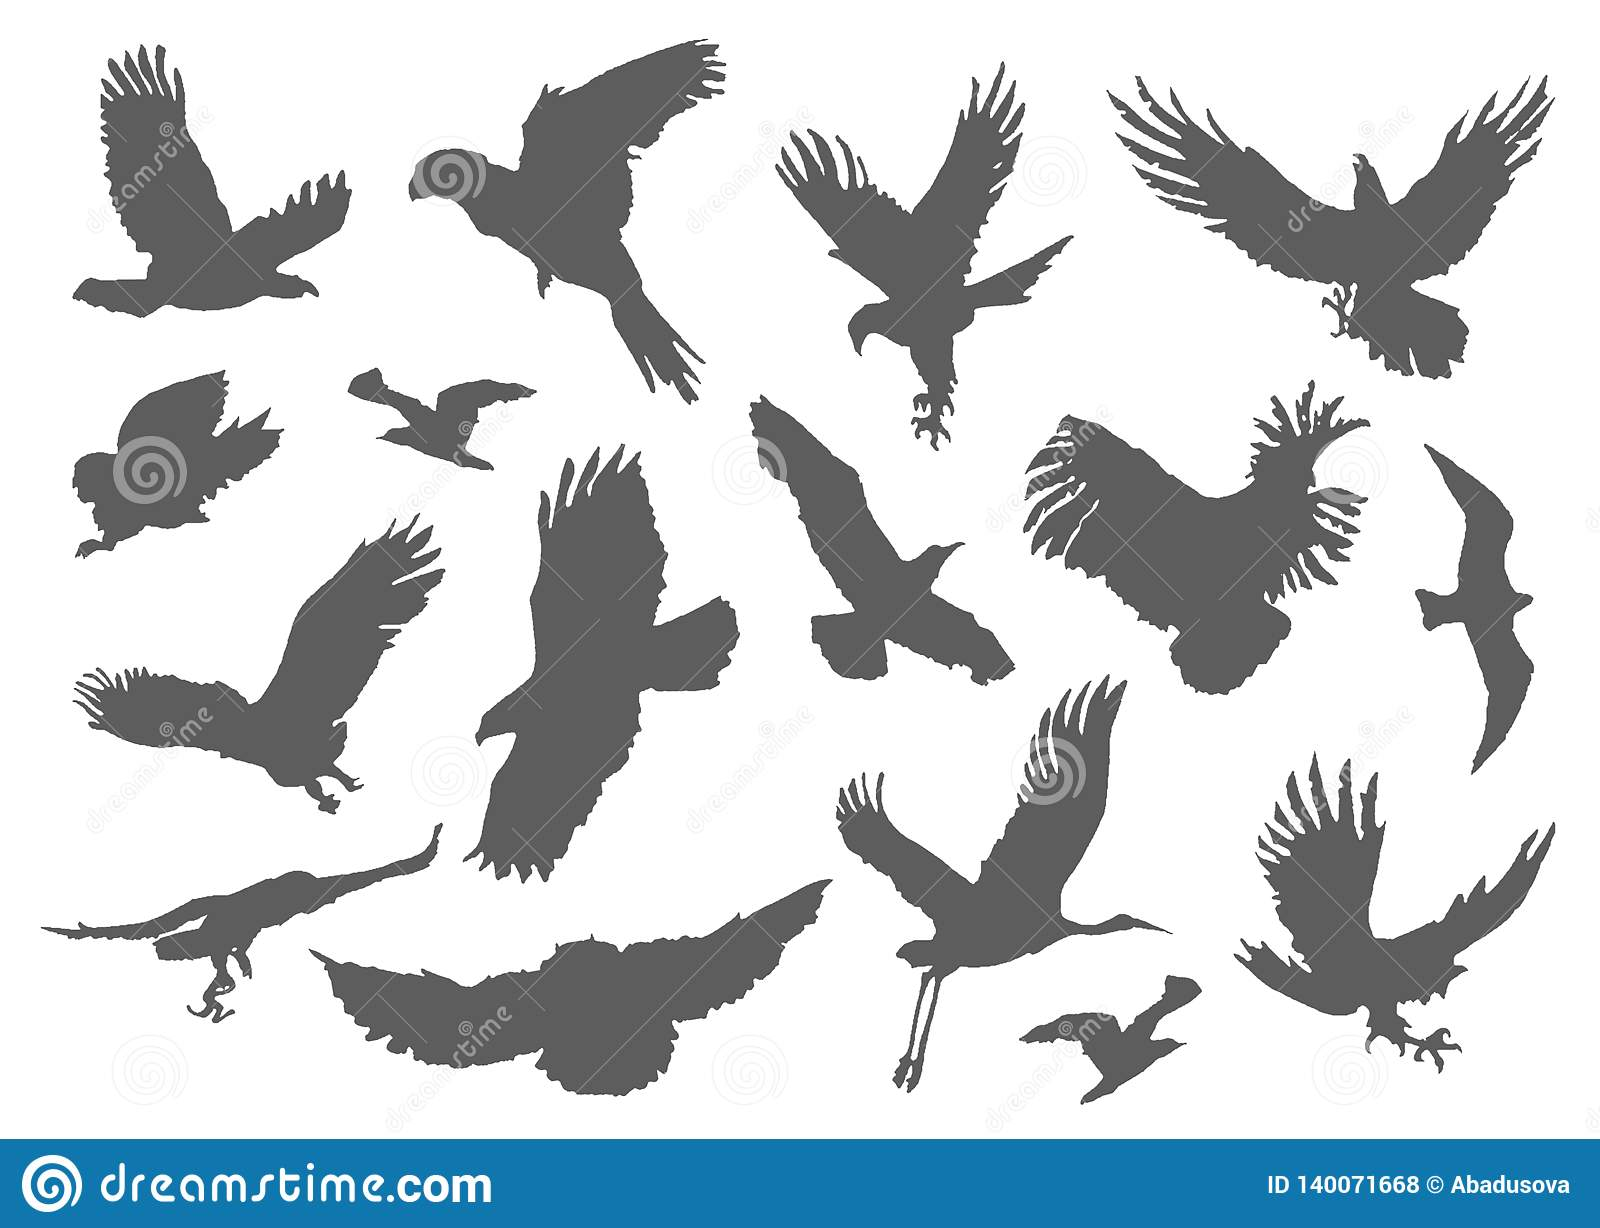 Silhouette Of Flying Birds On White Background Inspirational Body Flash Tattoo Ink Set With Textured Stipple Grey Stock Vector Illustration Of Endless Background 140071668